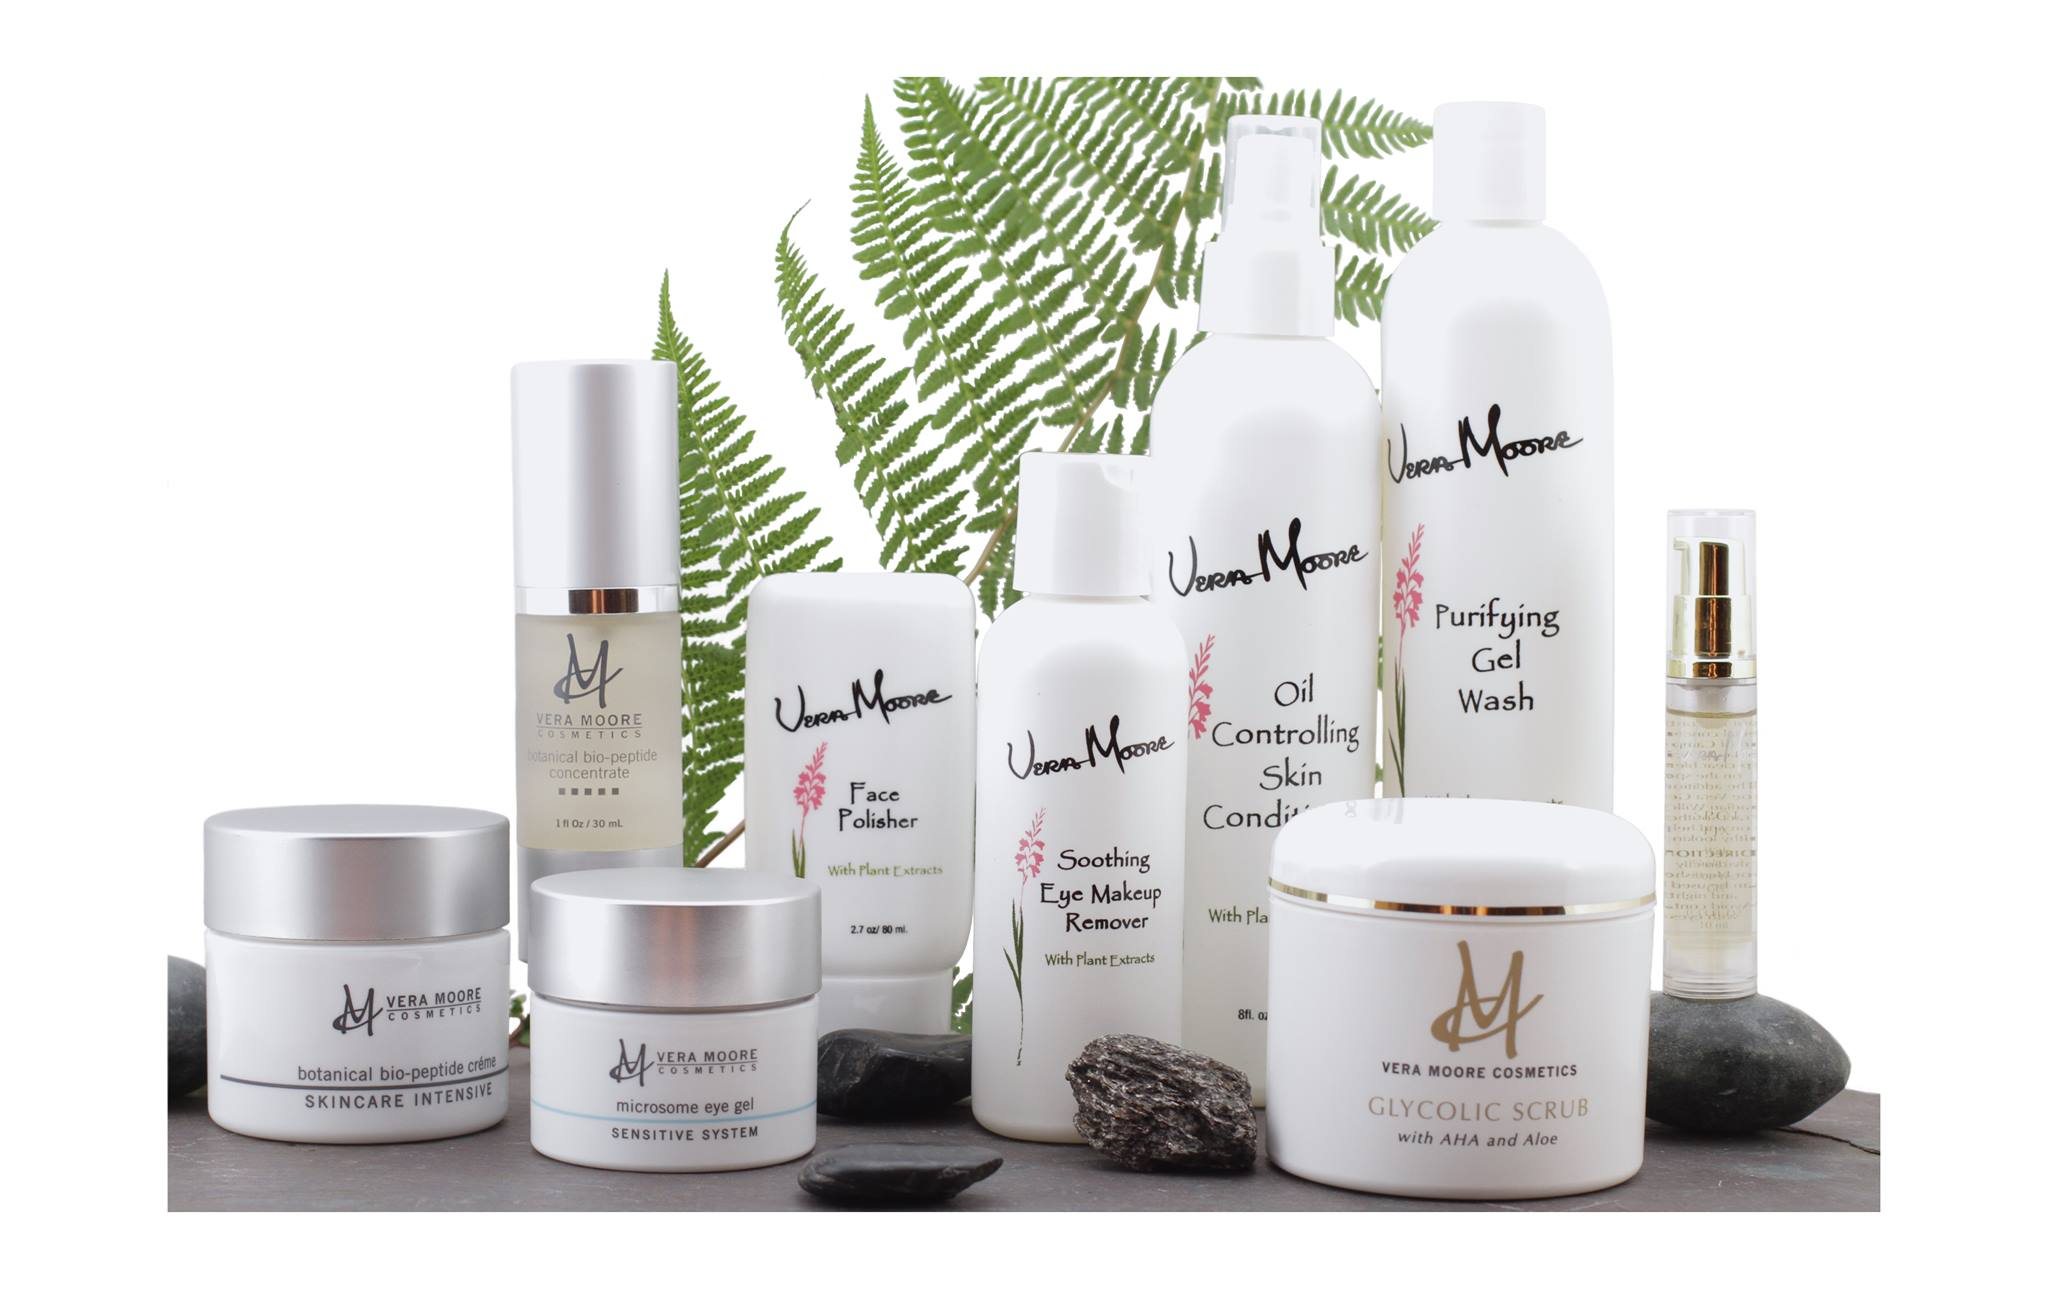 Cosmetics and Skincare black owned business judys black book